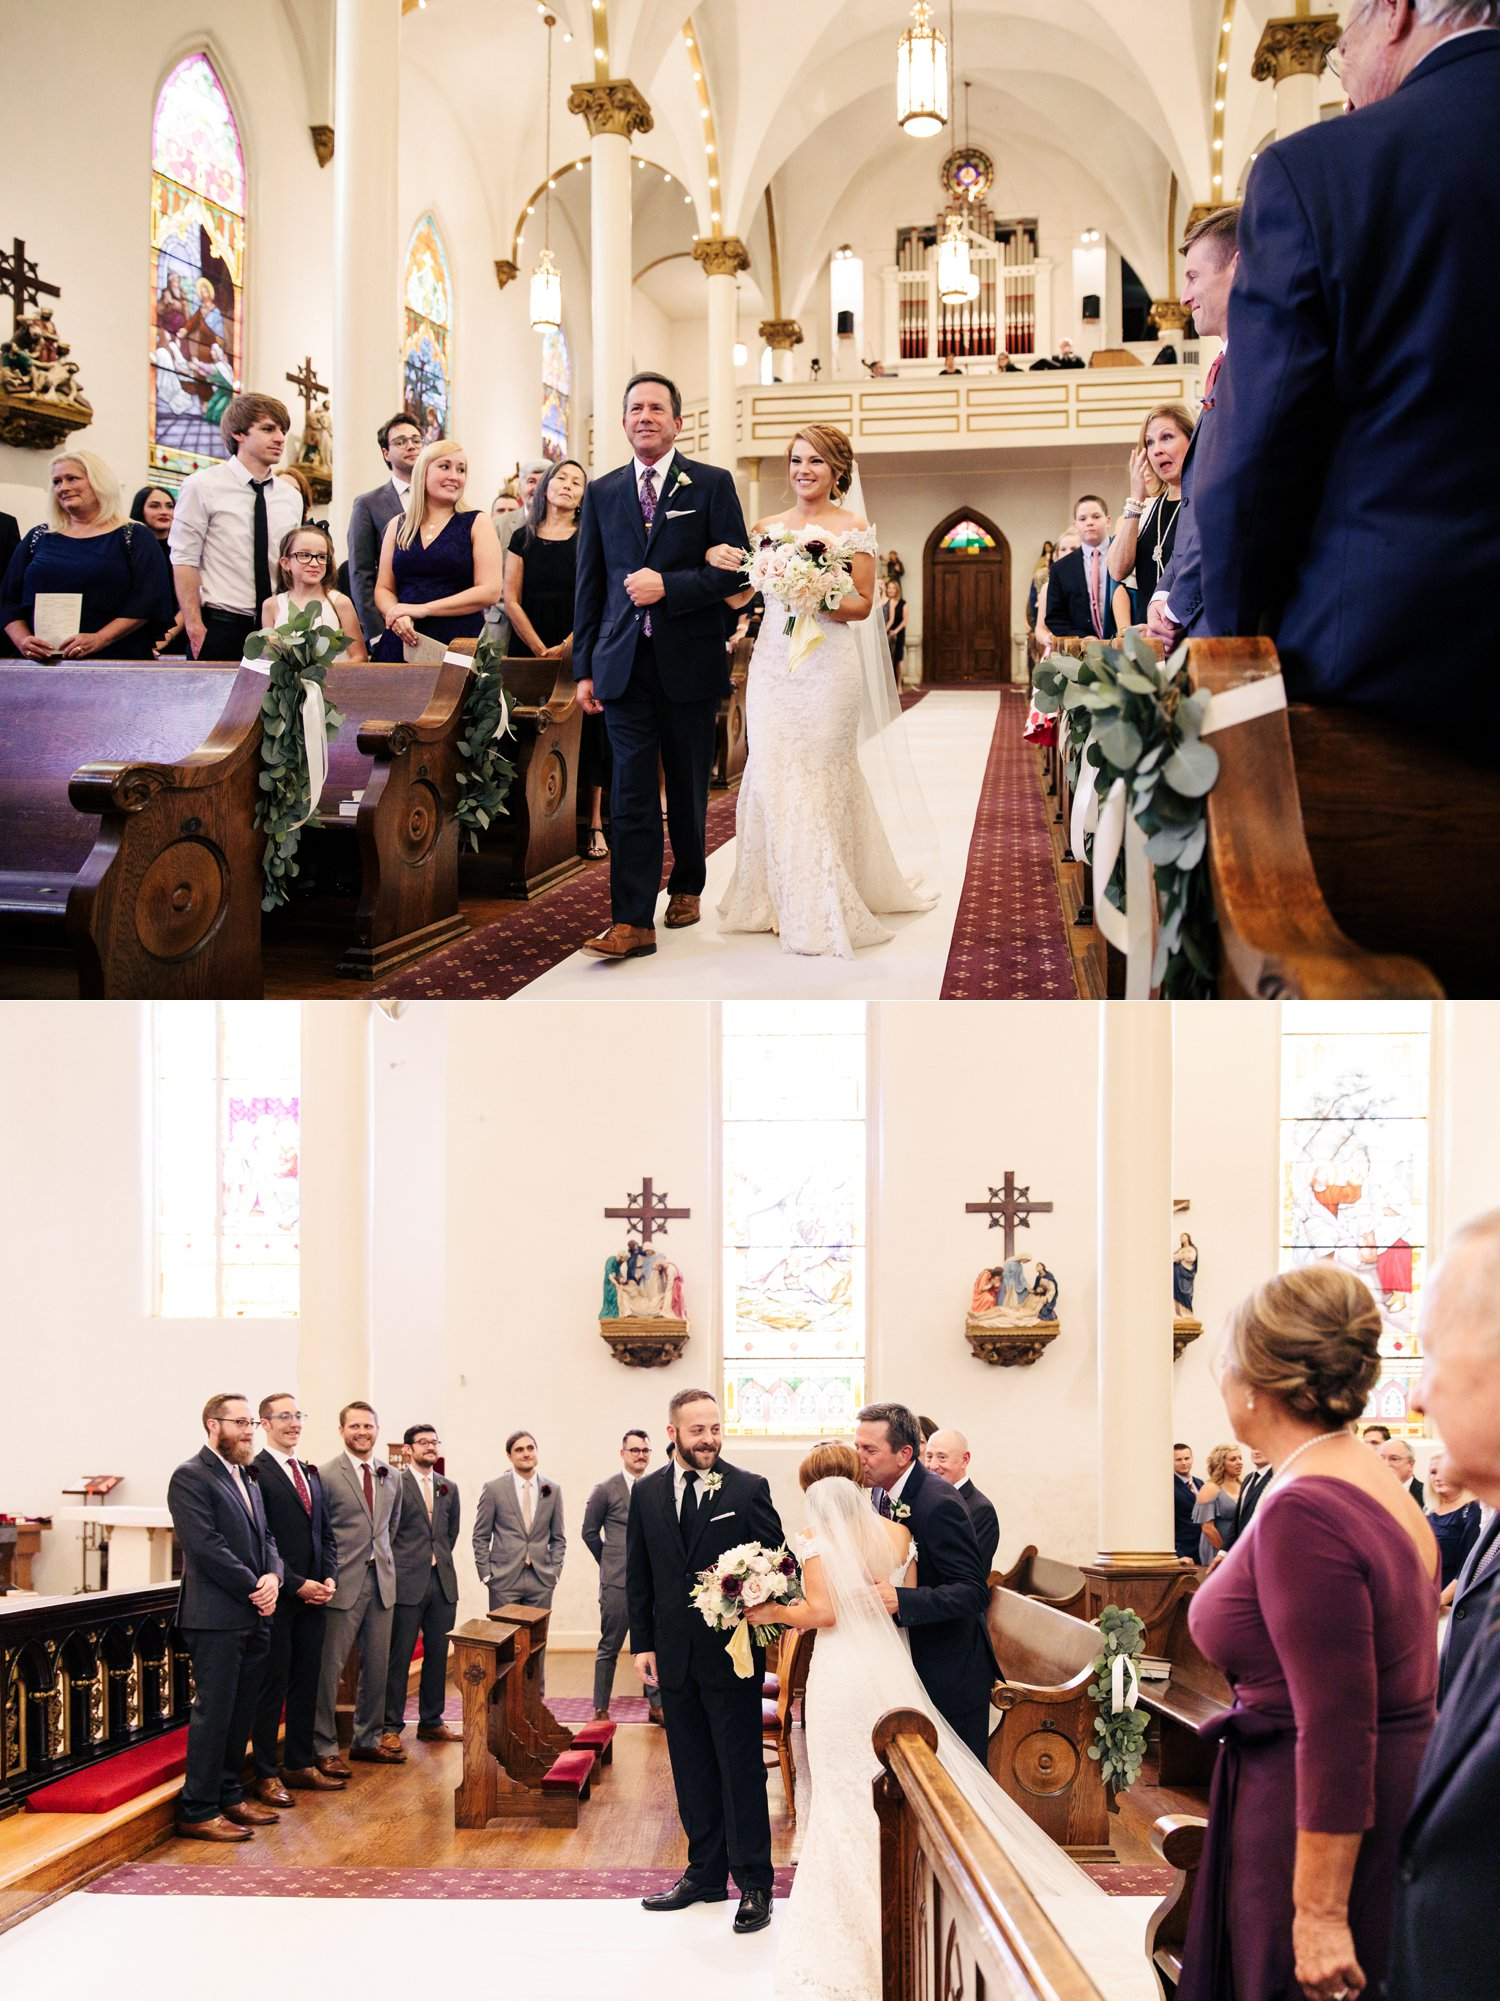 CK-PHOTO-nashville-wedding-photographer-neuhoff-building-assumption-church_0013.jpg